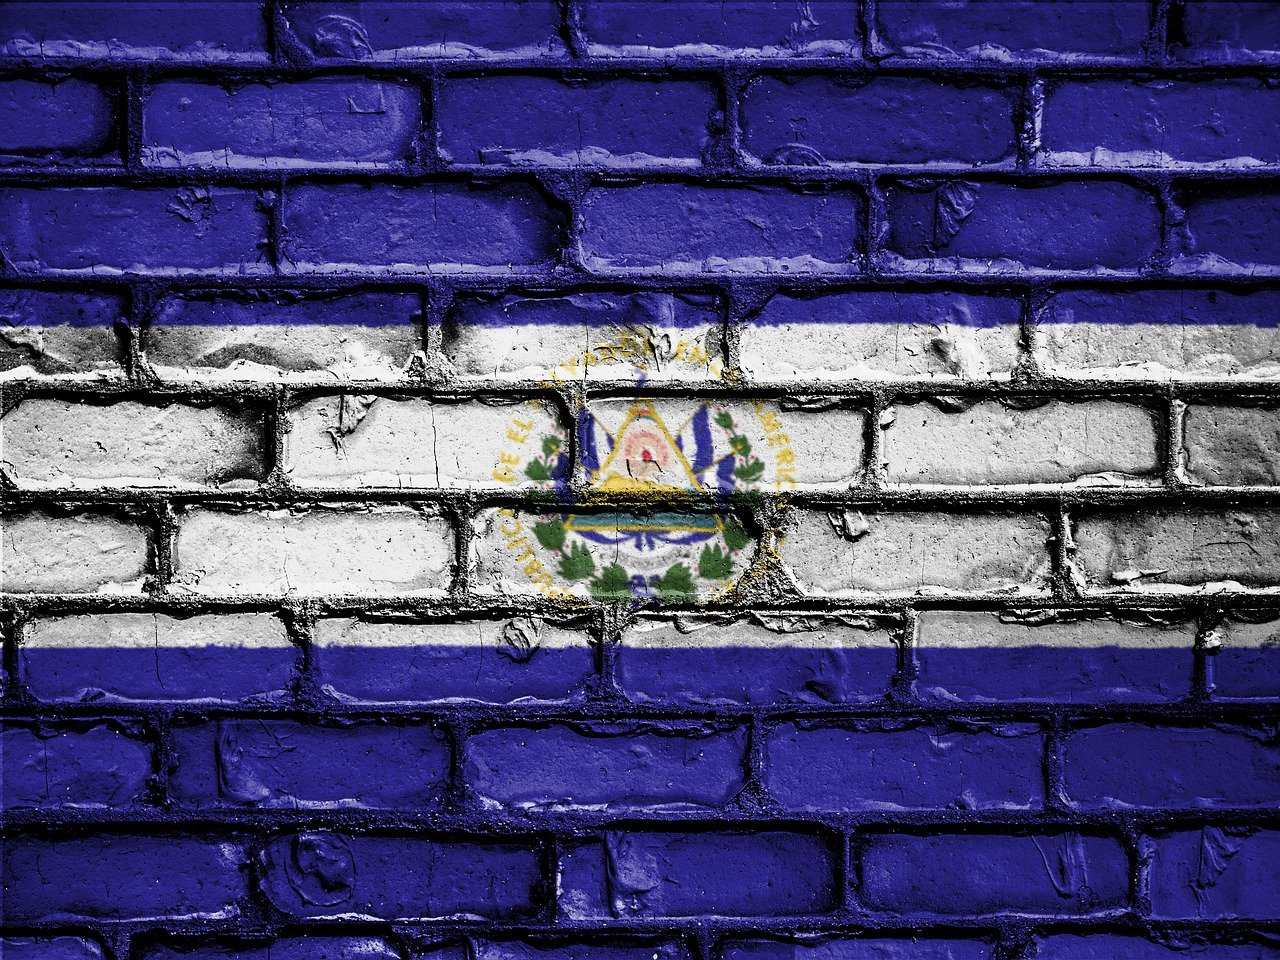 These are the key points El Salvador's 'worrying' Bitcoin banking regulations ignore